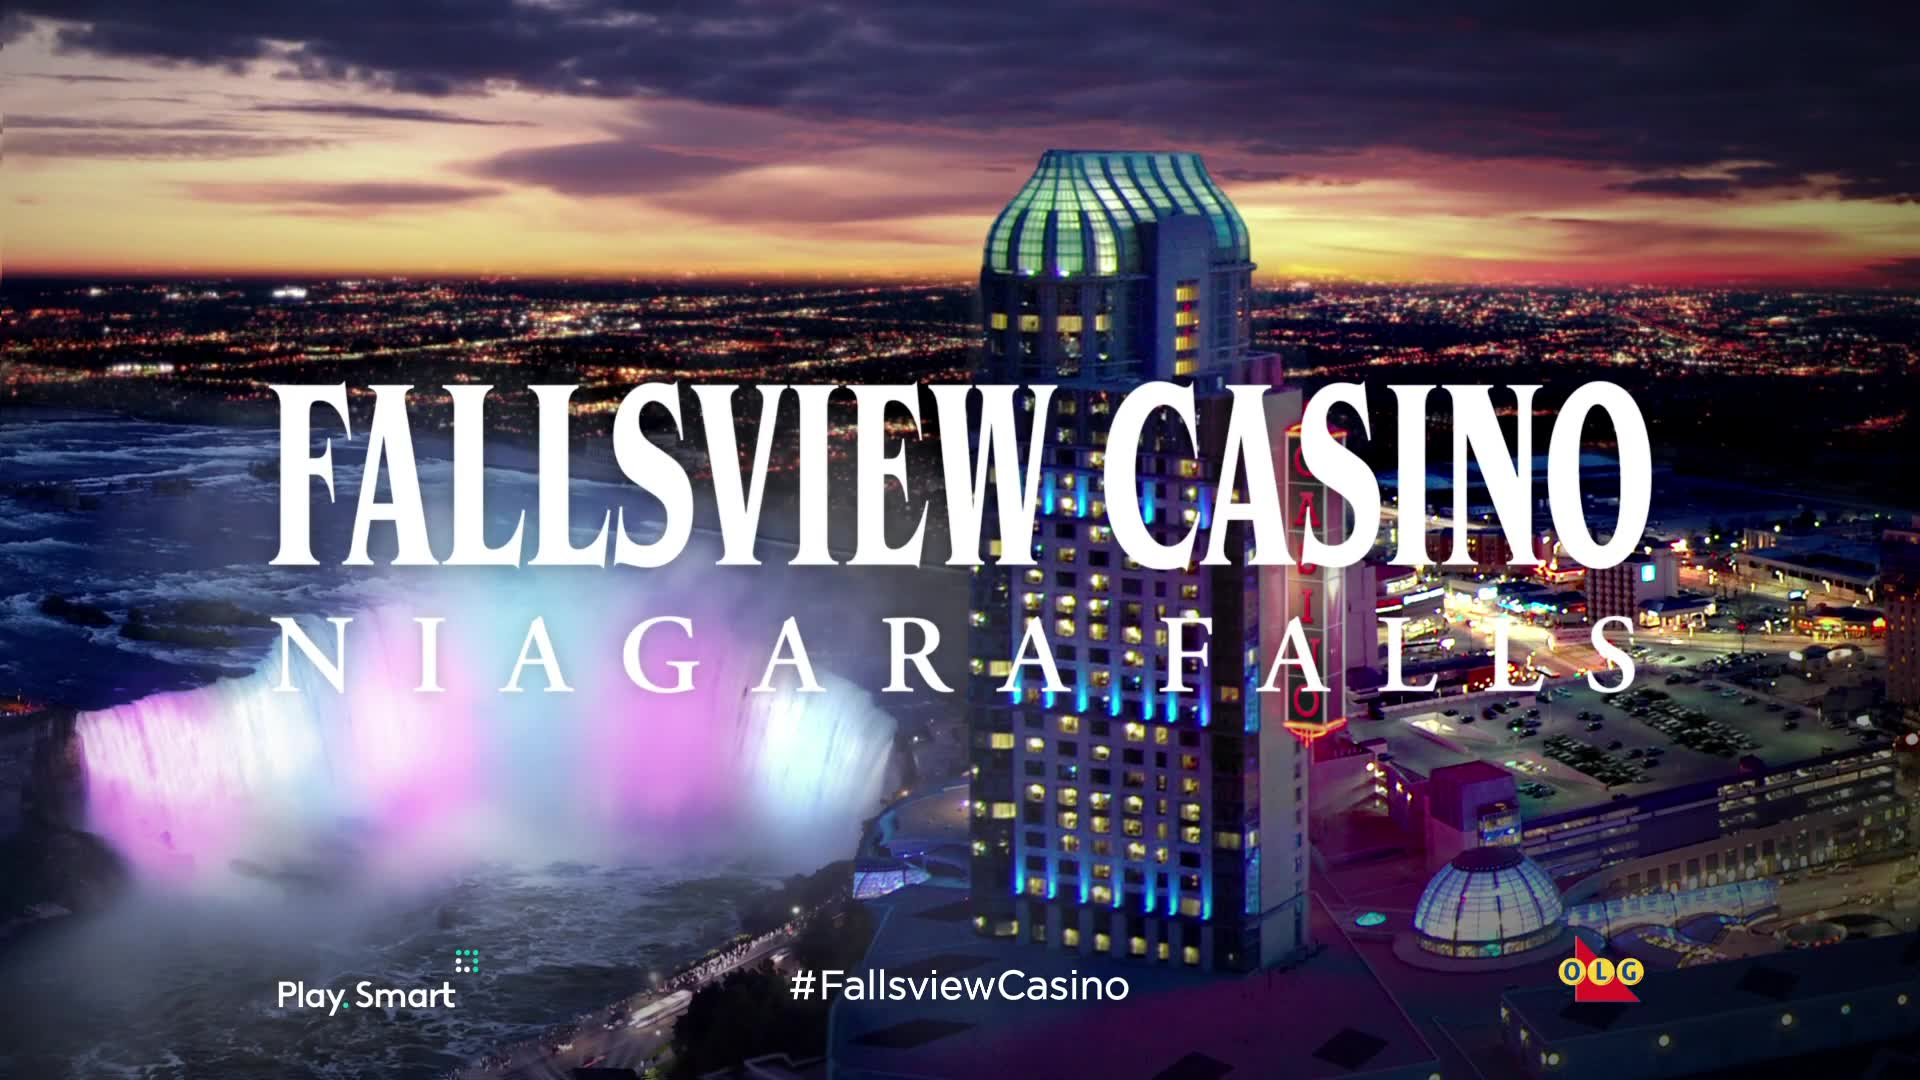 Fallsview casino ads egt natural